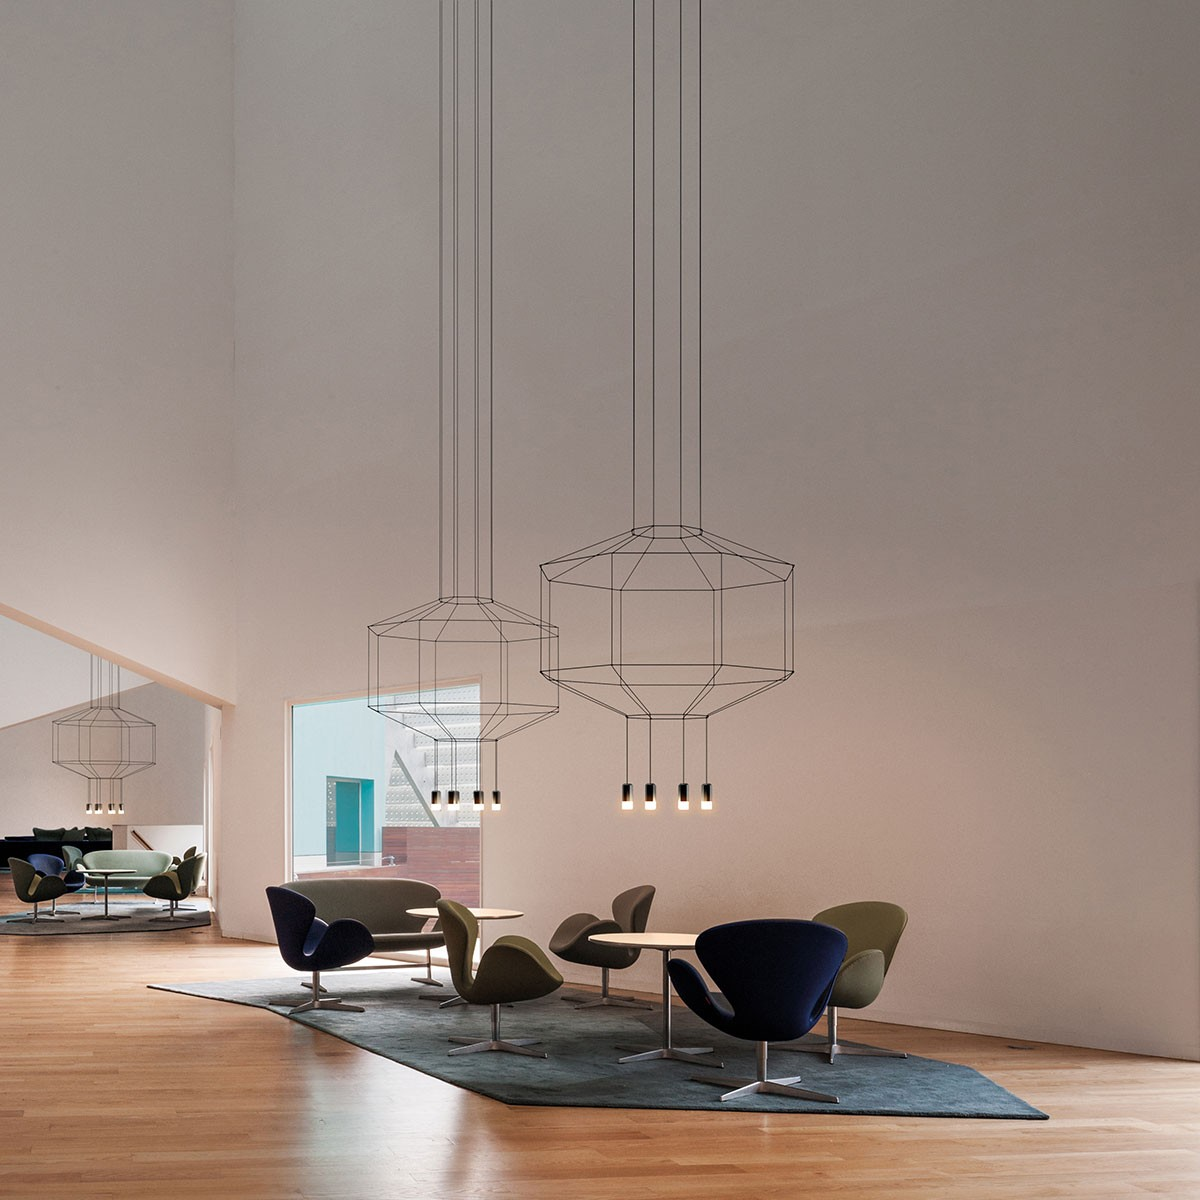 SA Voltex High Quality Furniture and Lighting in The World 6